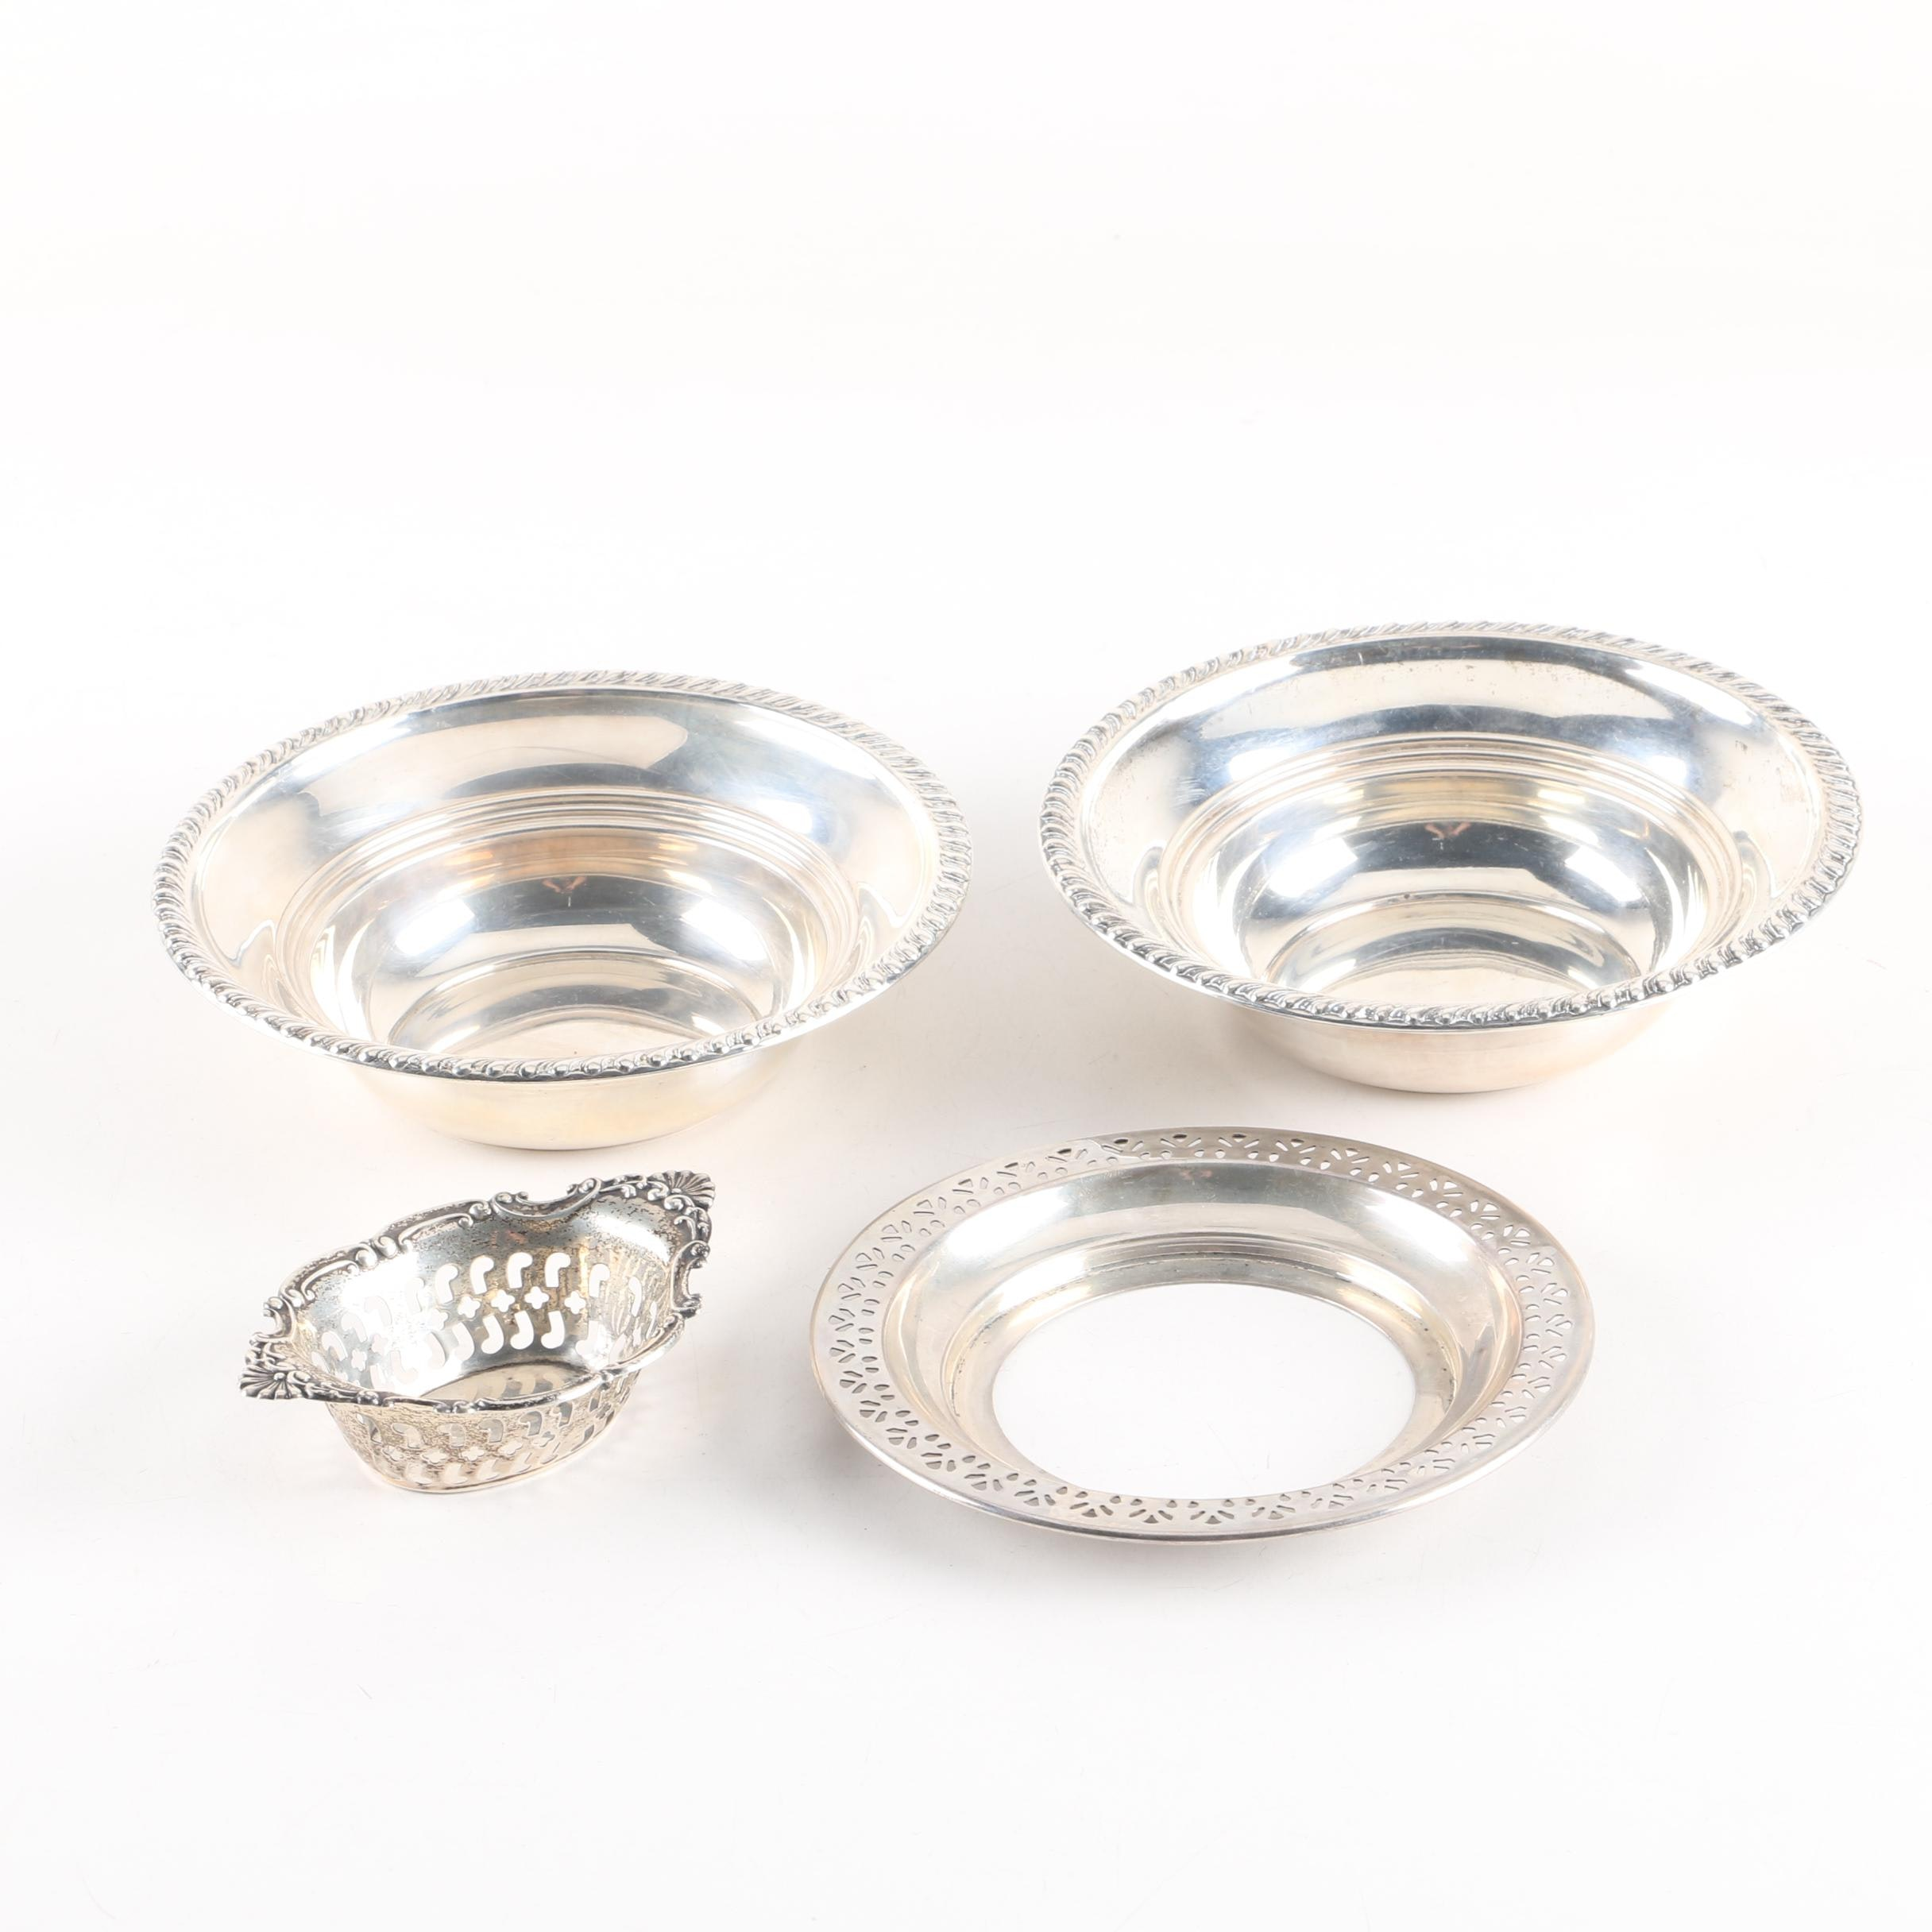 Frank M. Whiting & Co. Sterling Silver Nut Bowl with Other Sterling Bowls